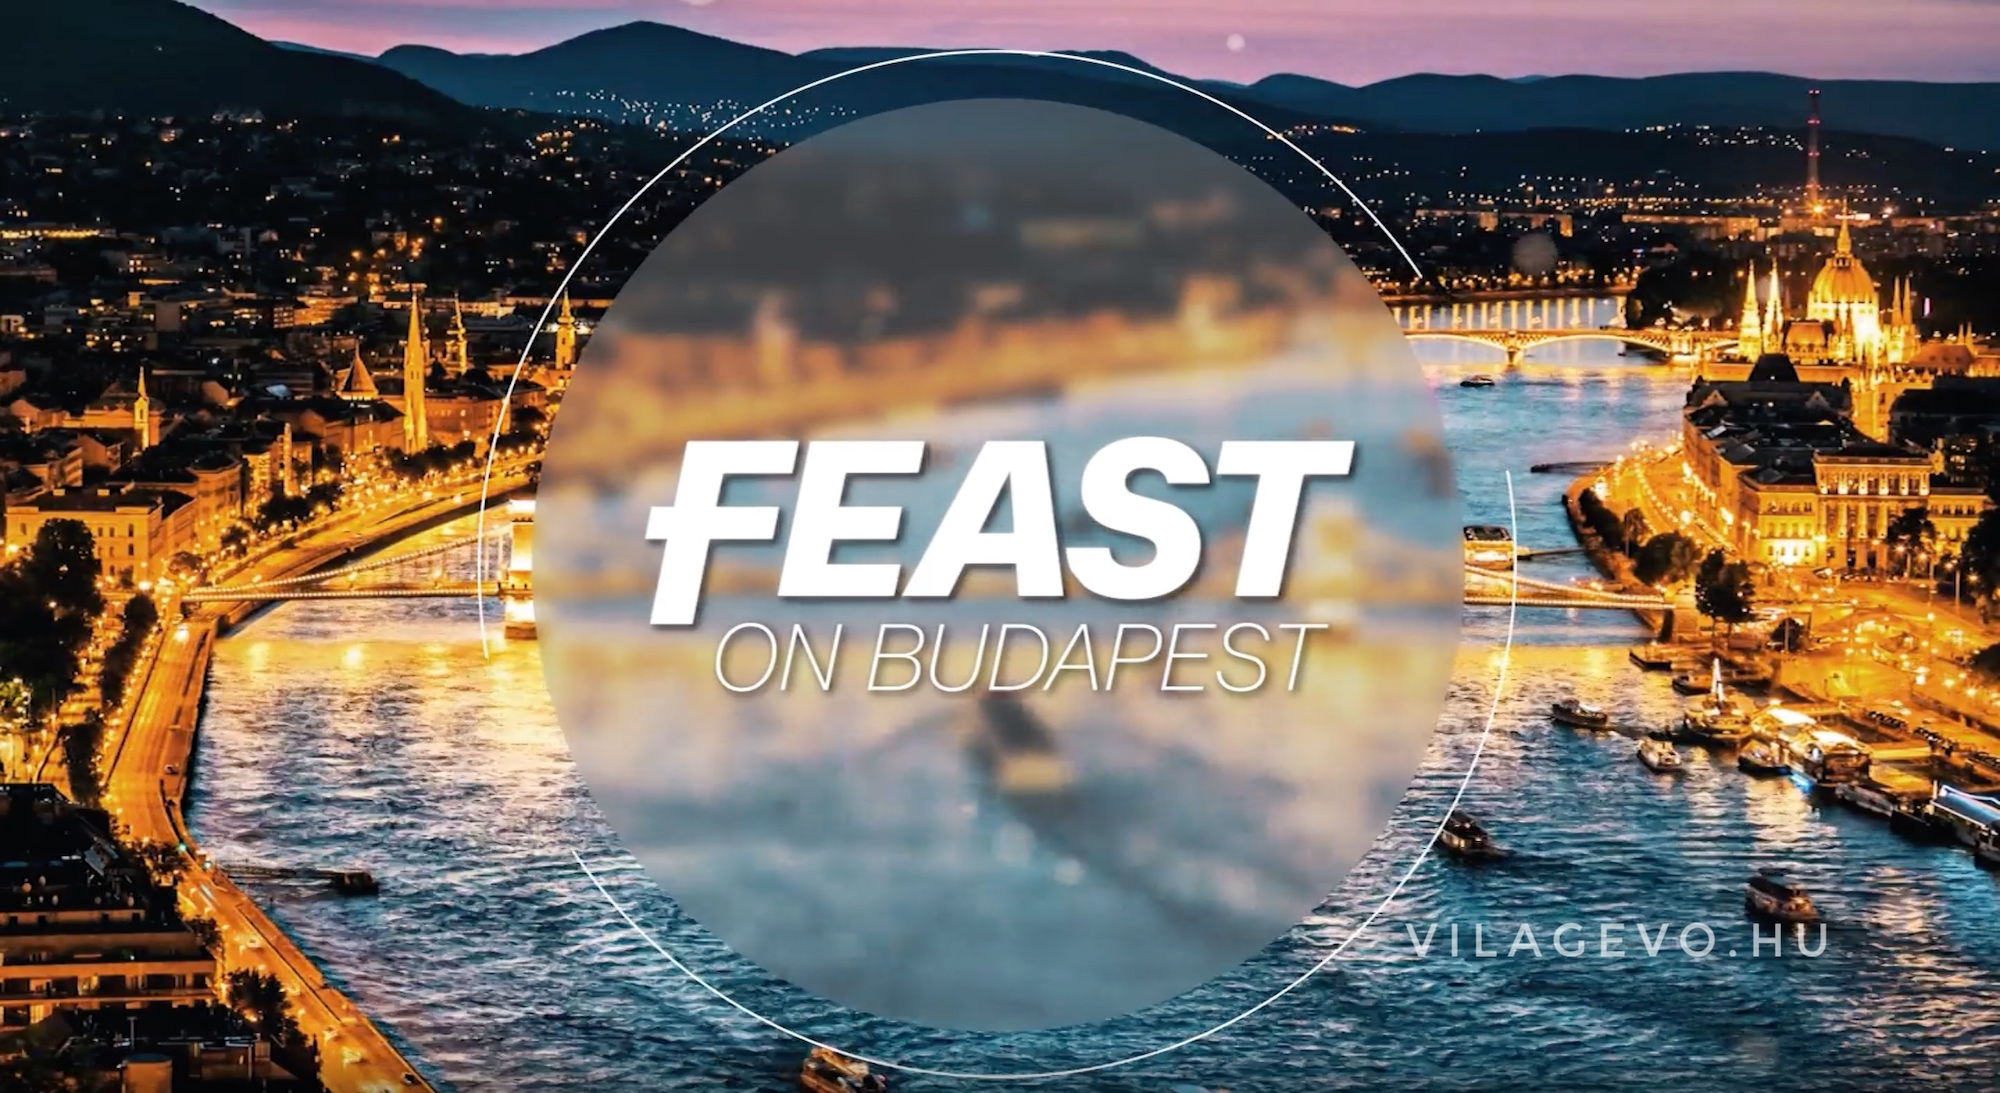 cnn_feast_on_budapest_vilagevo.jpeg